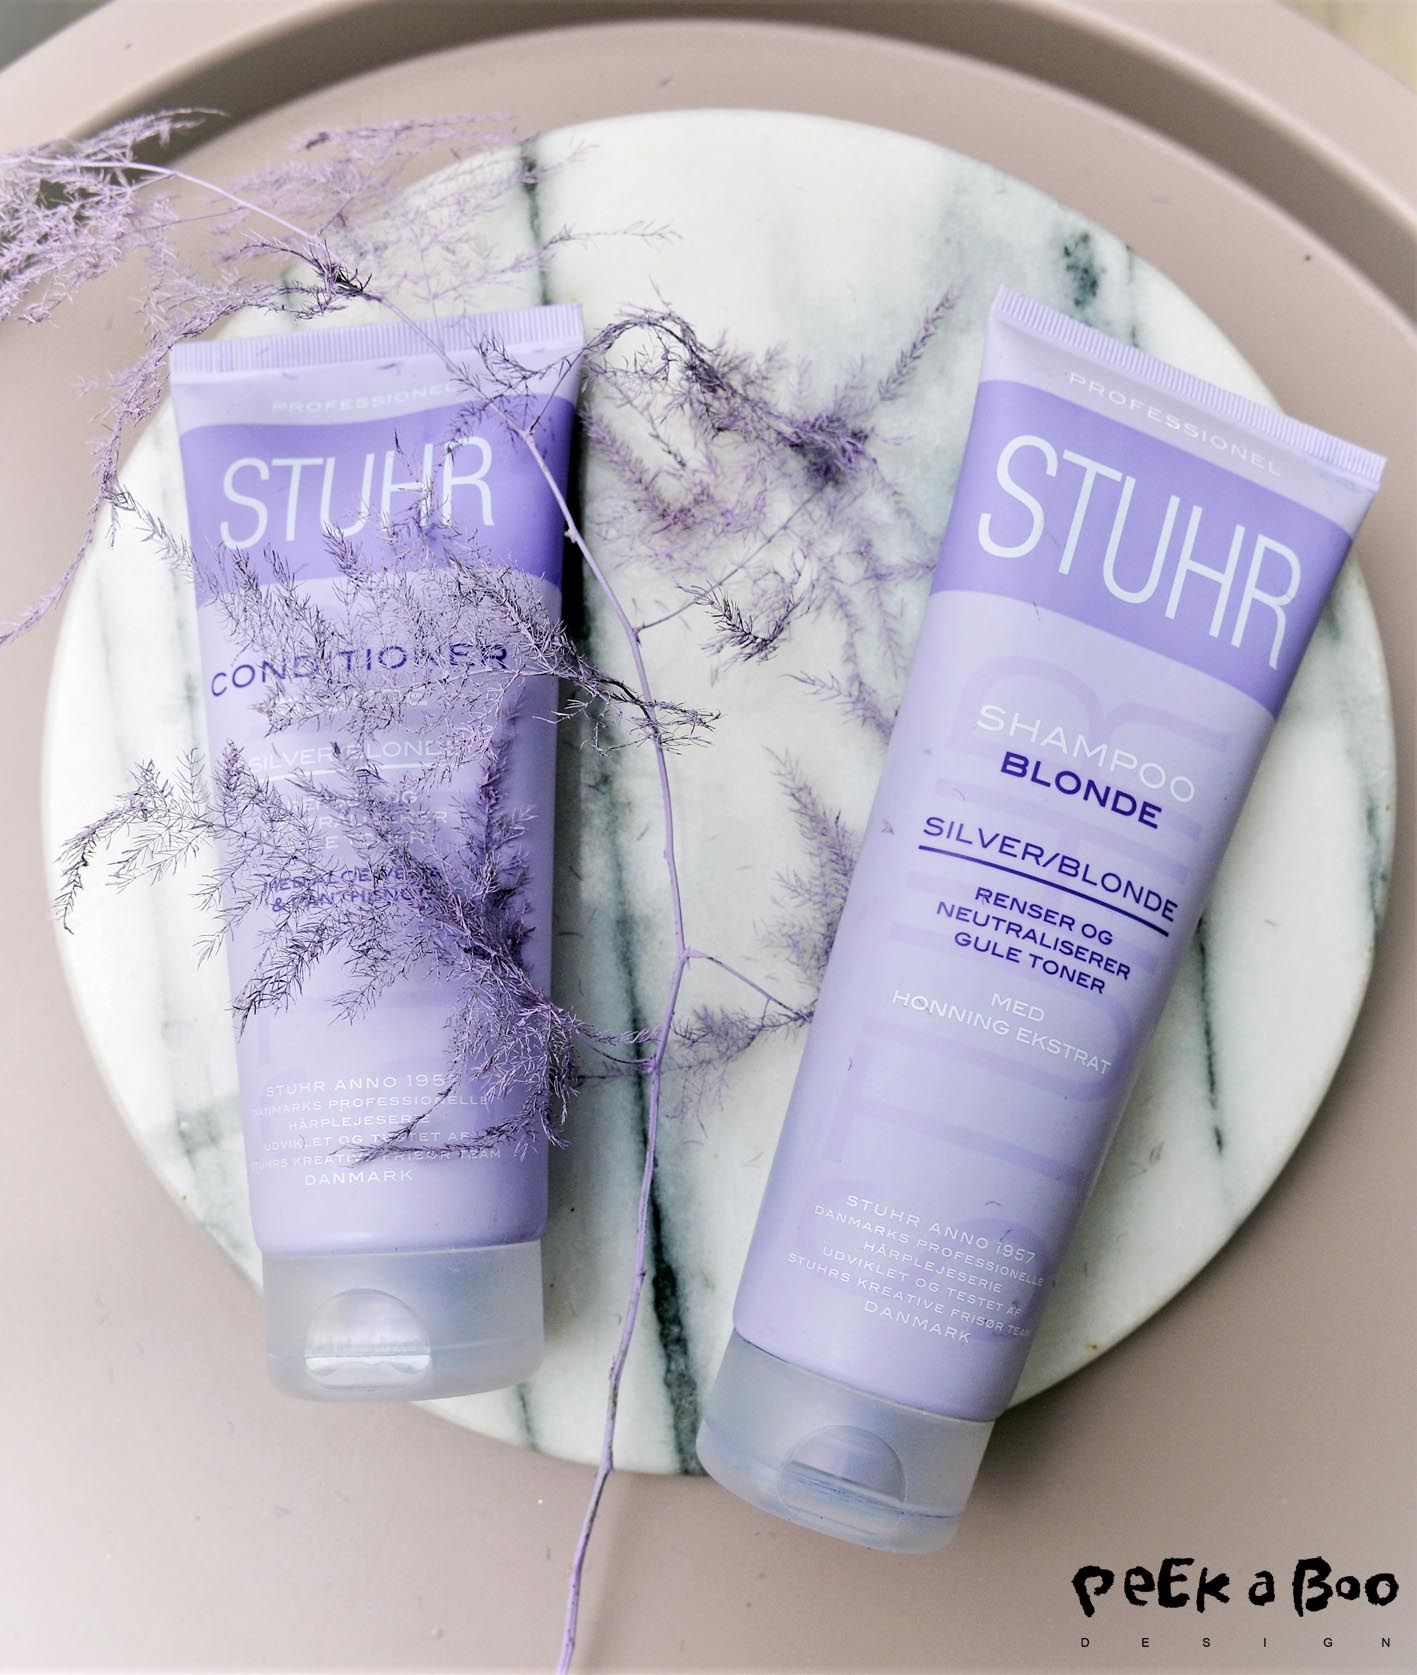 This purple blueish shampoo and conditioner from Stuhr.